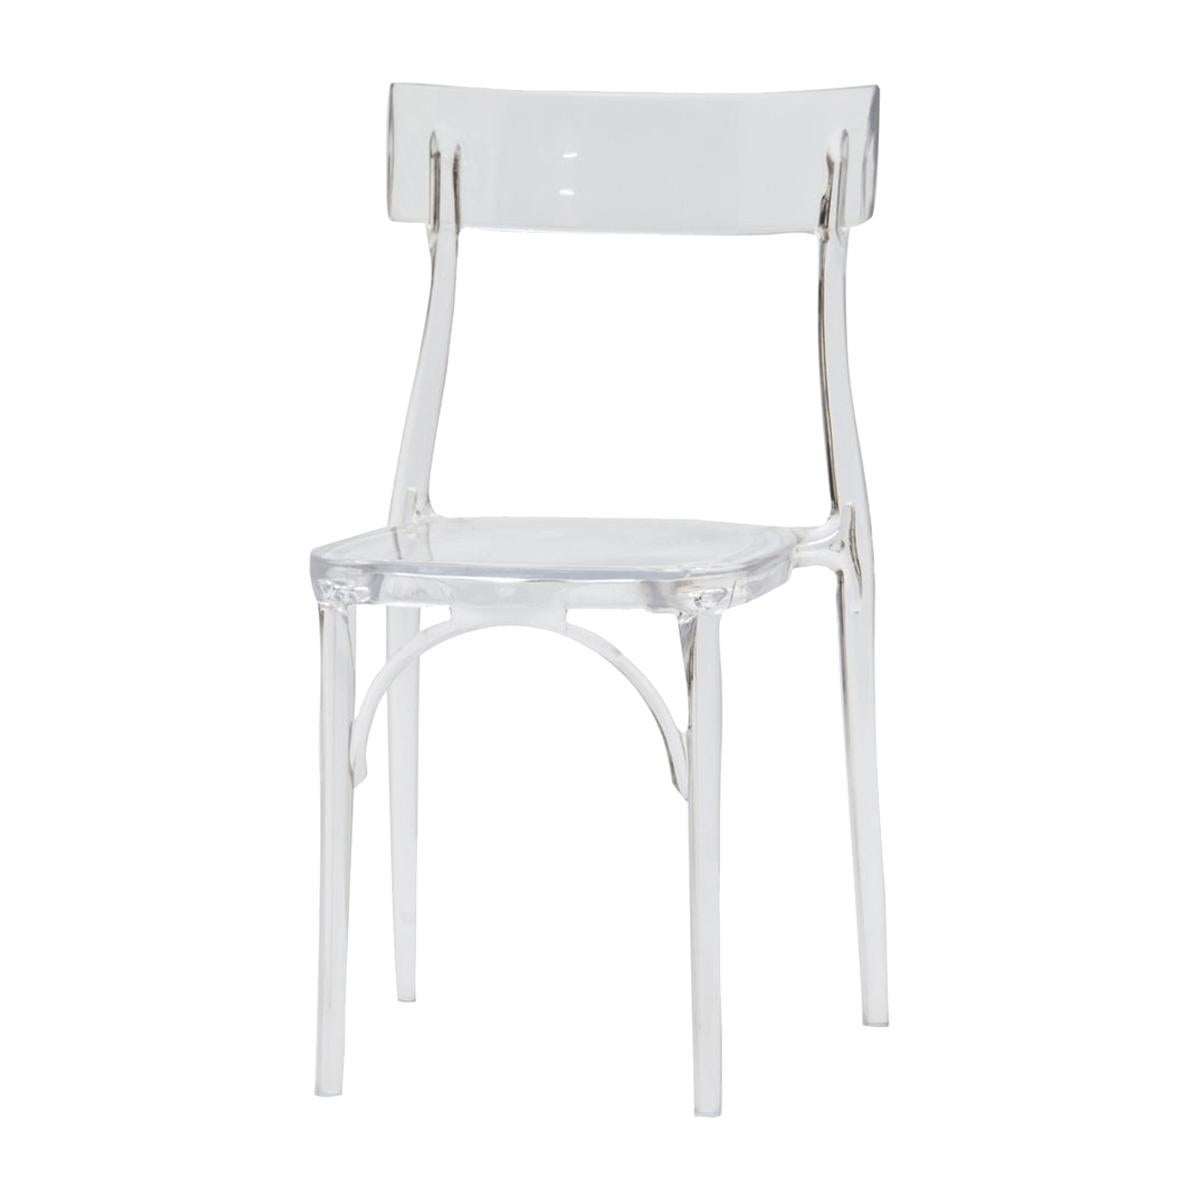 Milani, Transparent Polycarbonate Dining Chair by Bestetti, Made in Italy